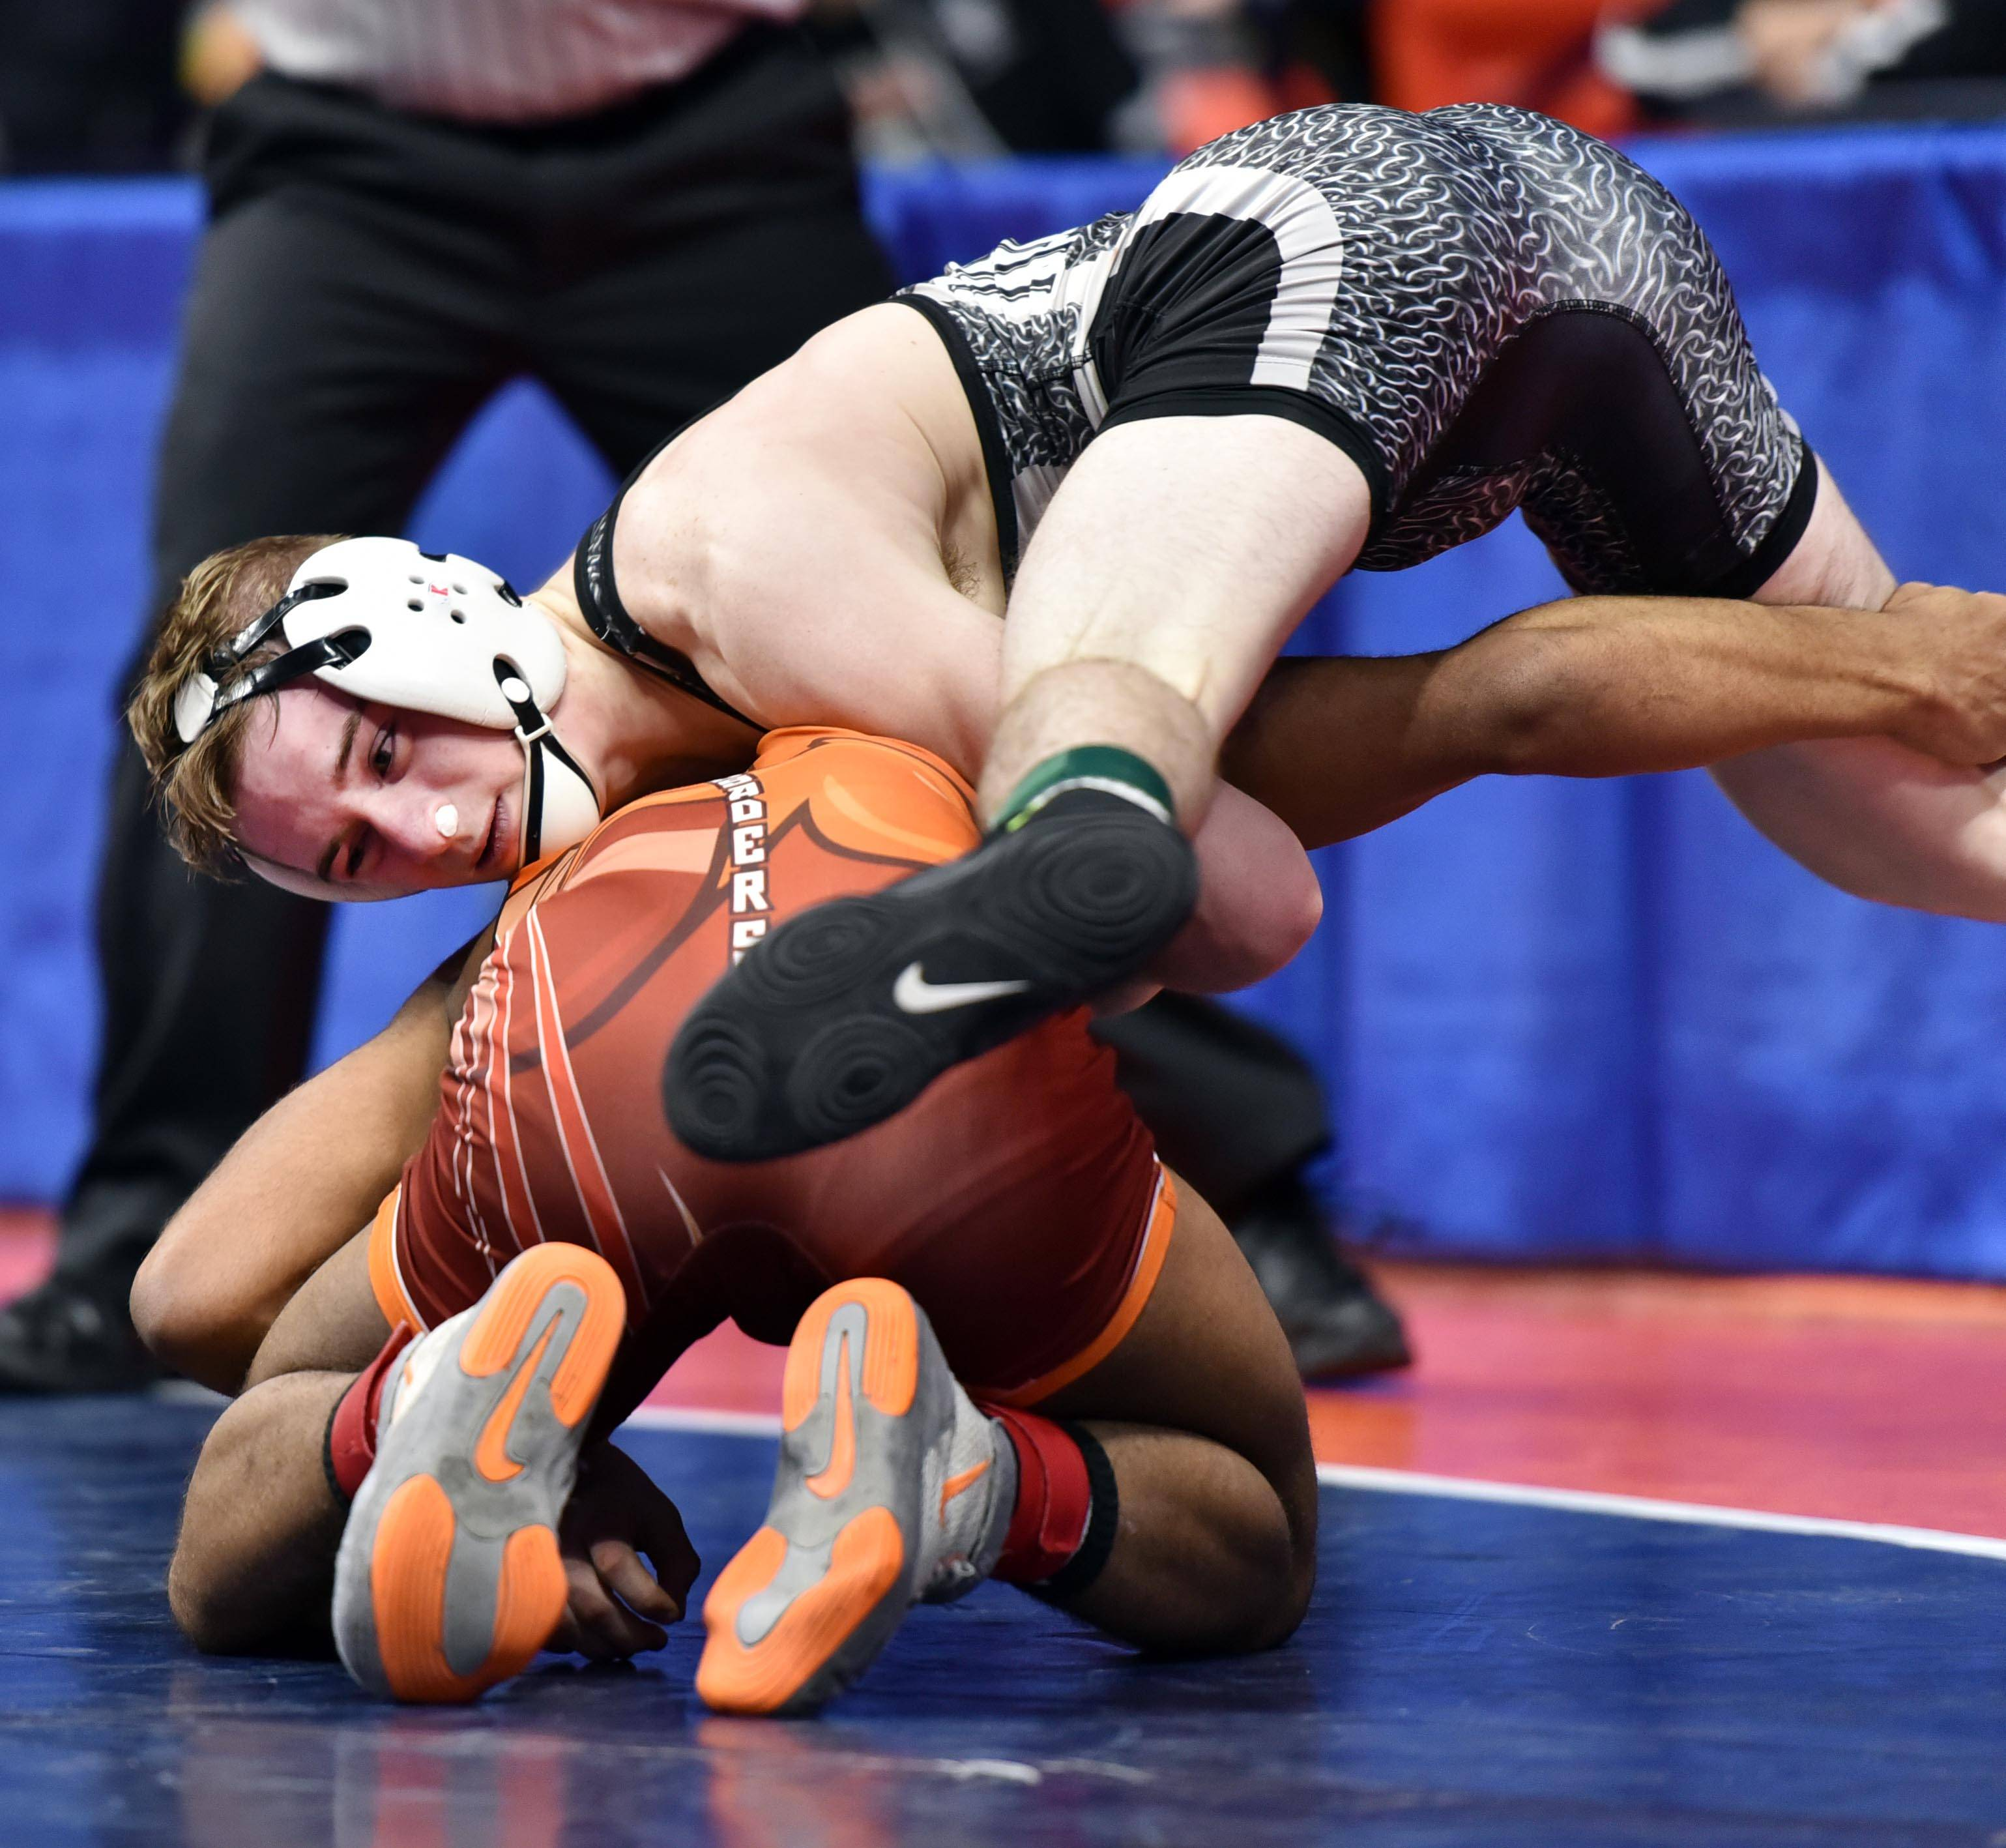 Kaneland's Austin Kenzie competes with Hassan Johnson of Brother Rice in theClass 2A 120-pound quarterfinal bout Friday at the IHSA state wrestling tournament preliminaries.